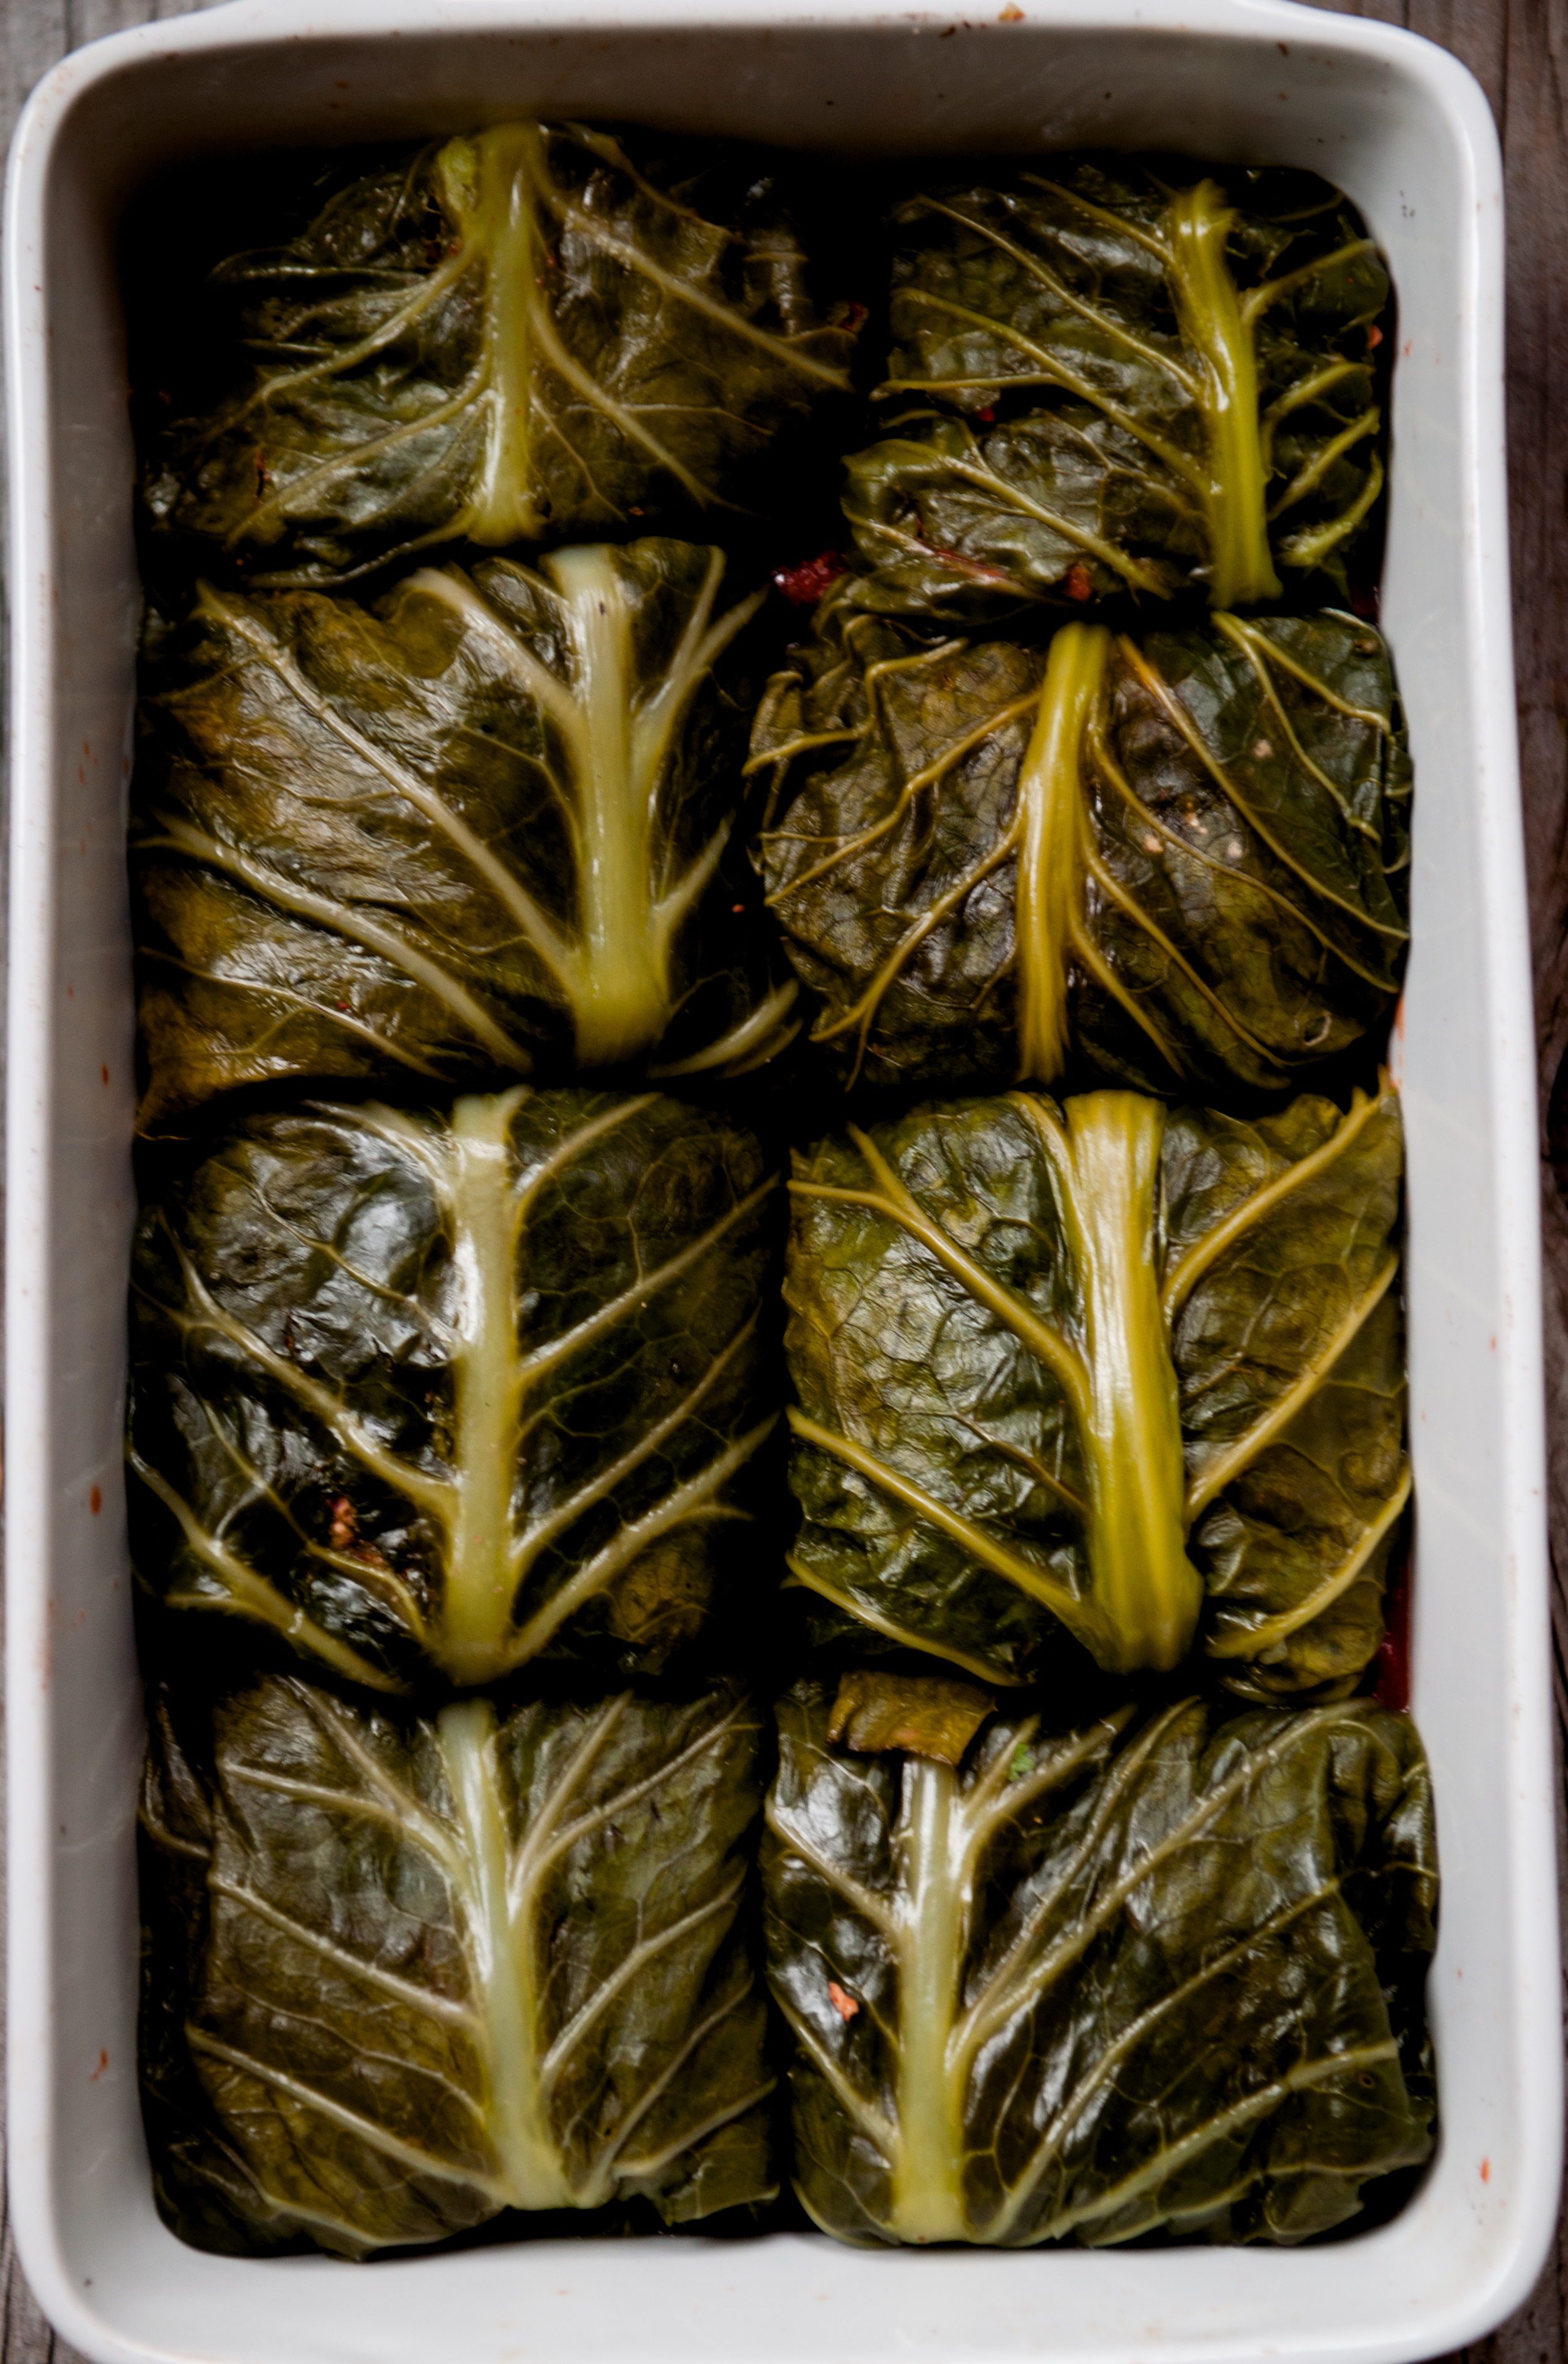 These steamed collard green leaves are wrapped around a stuffing of brown rice cooked with beets and a little stock. Ready to be sauced and baked for a scrumptiously hearty meal.